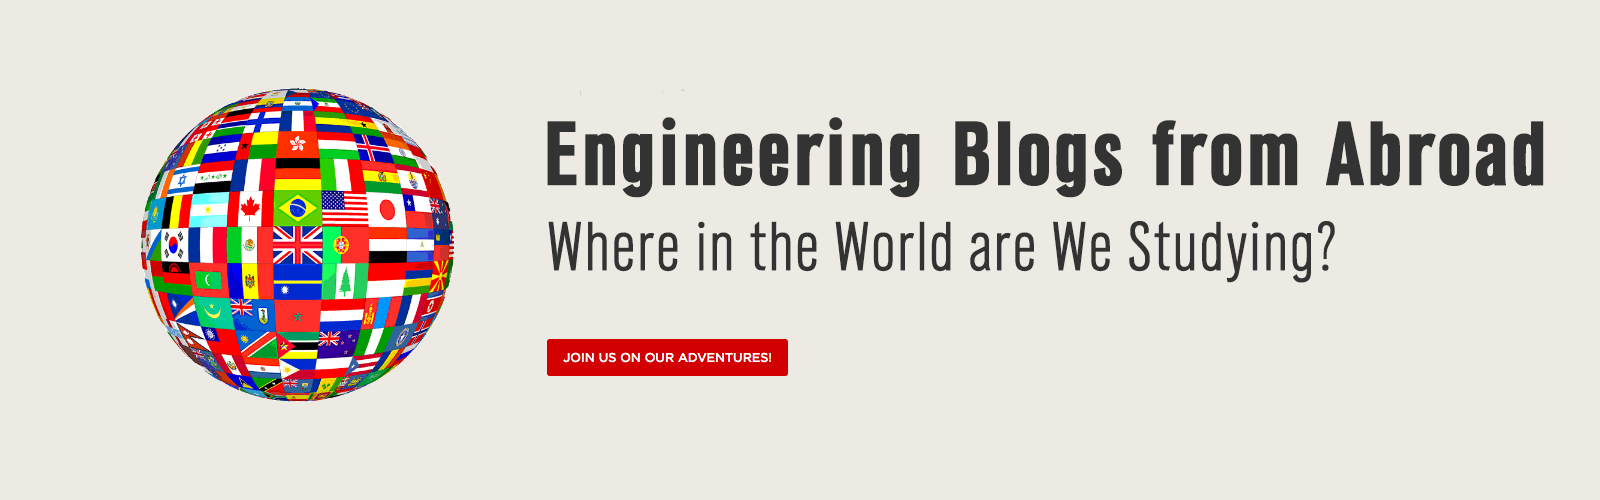 Engineering Blogs from Abroad - Where in the World are We Studying? Join us on our adventures!